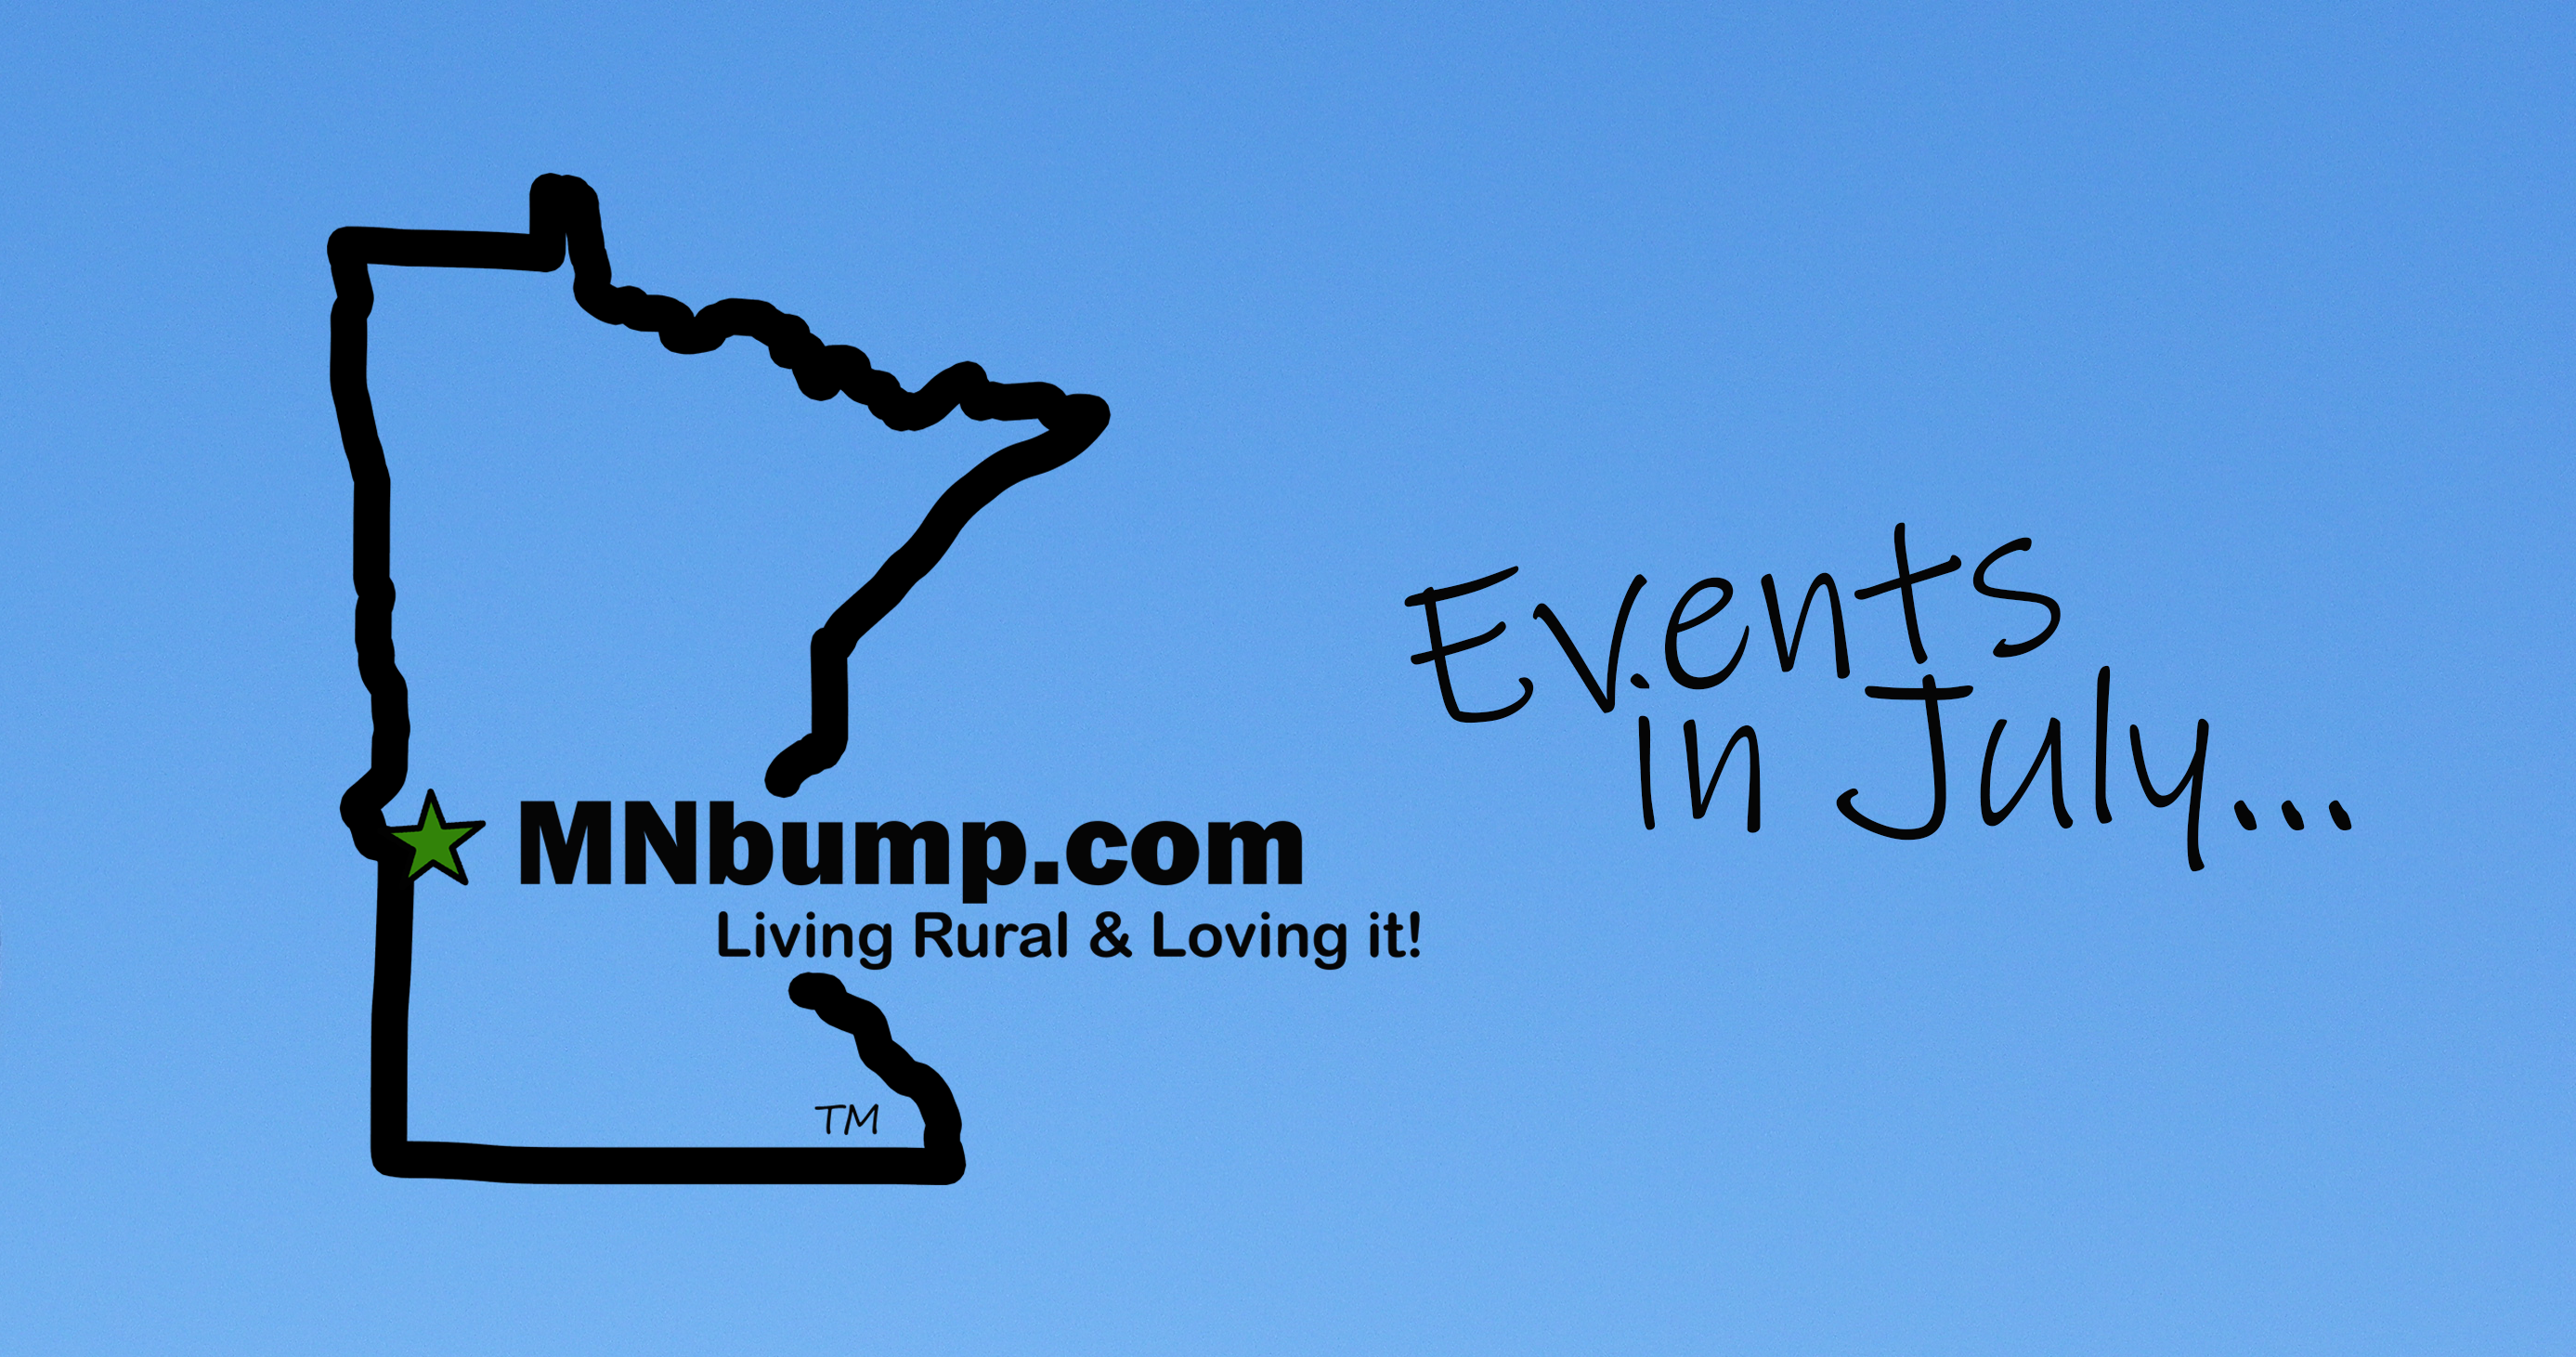 July Events on the MNbump!